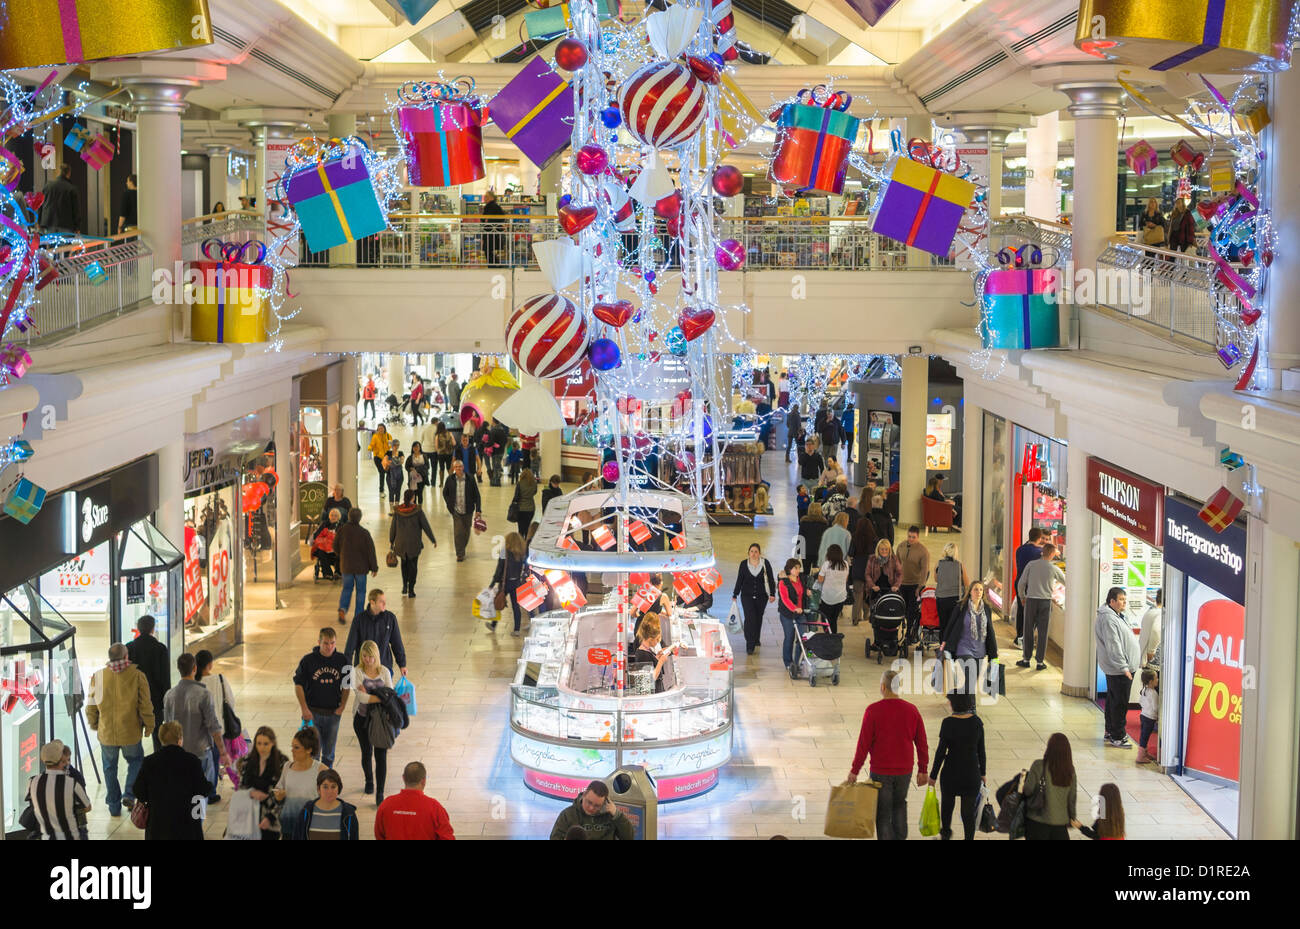 A Busy Day At The Metrocentre Shopping Mall At Christmas Stock Photo